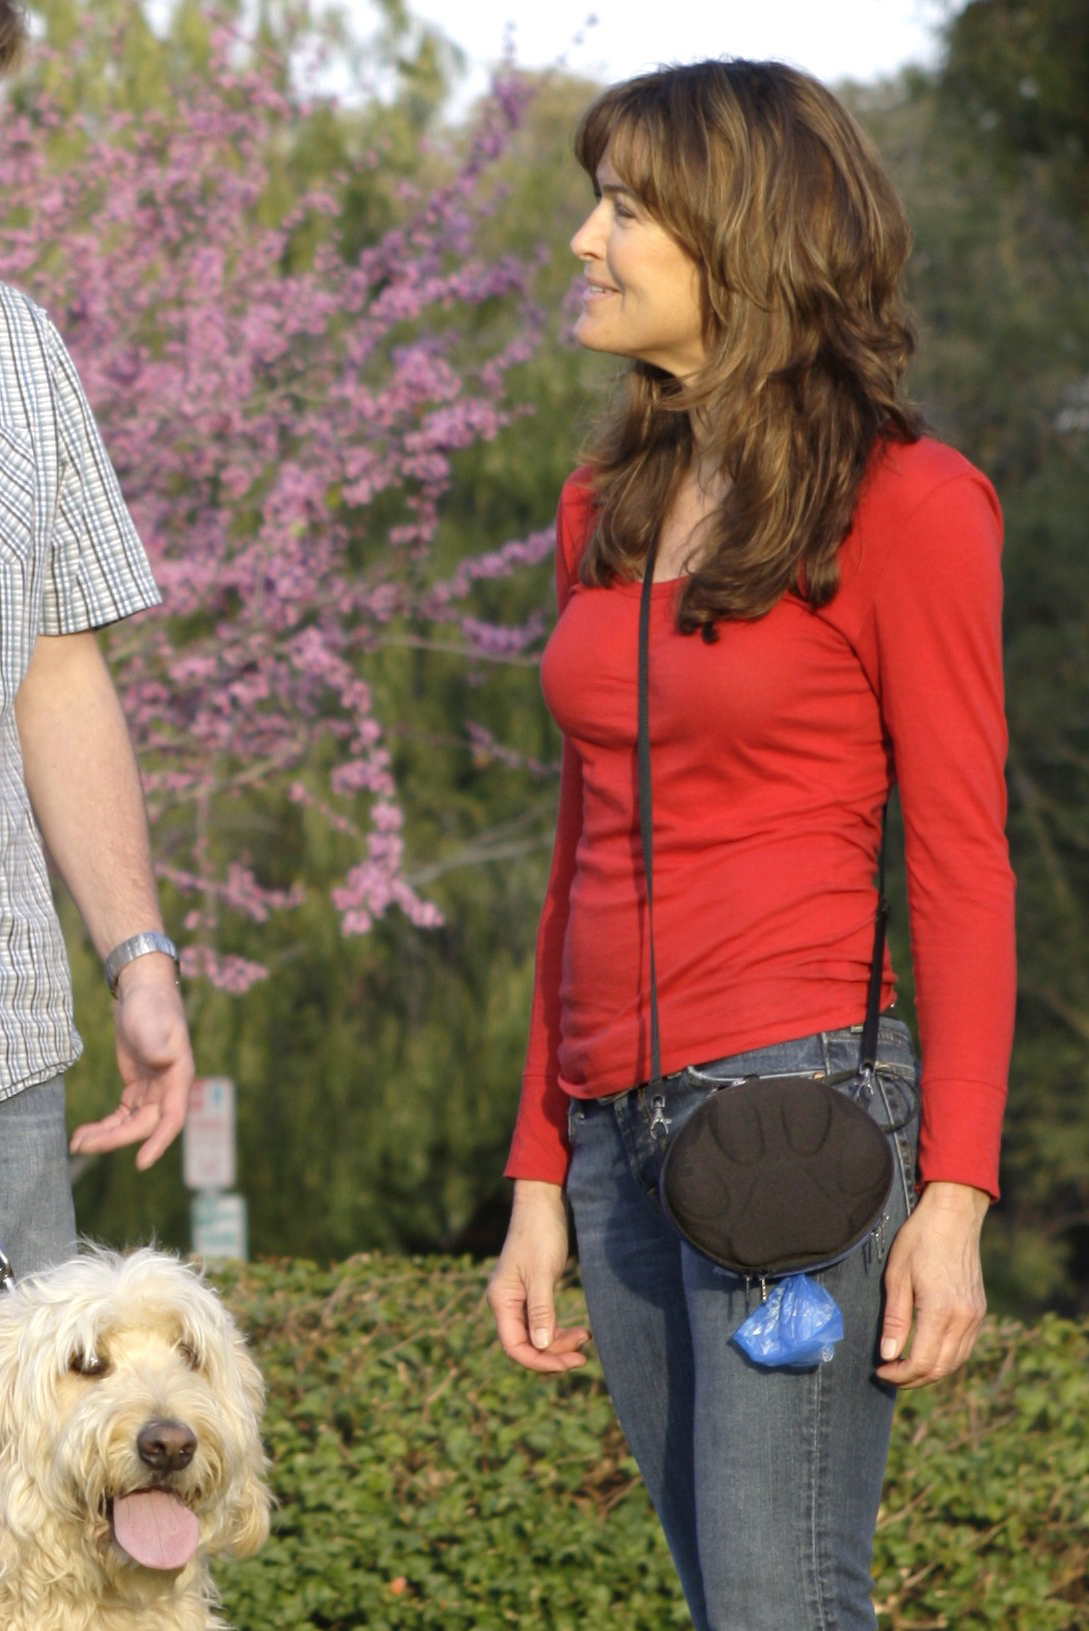 PoopPac Dog Walkers Bag for Women